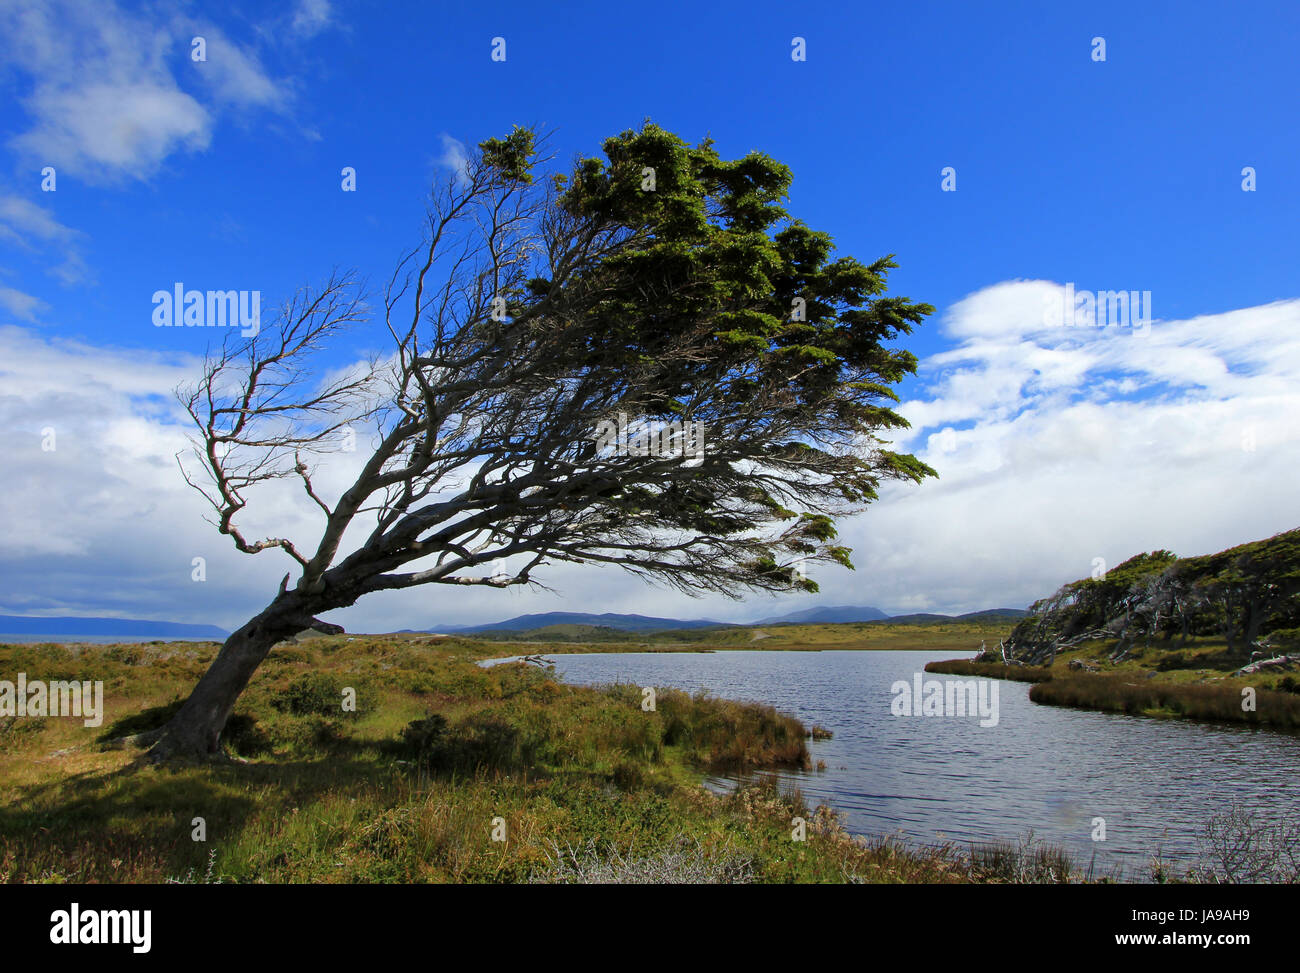 Tree deformed by wind, Patagonia, Argentina - Stock Image